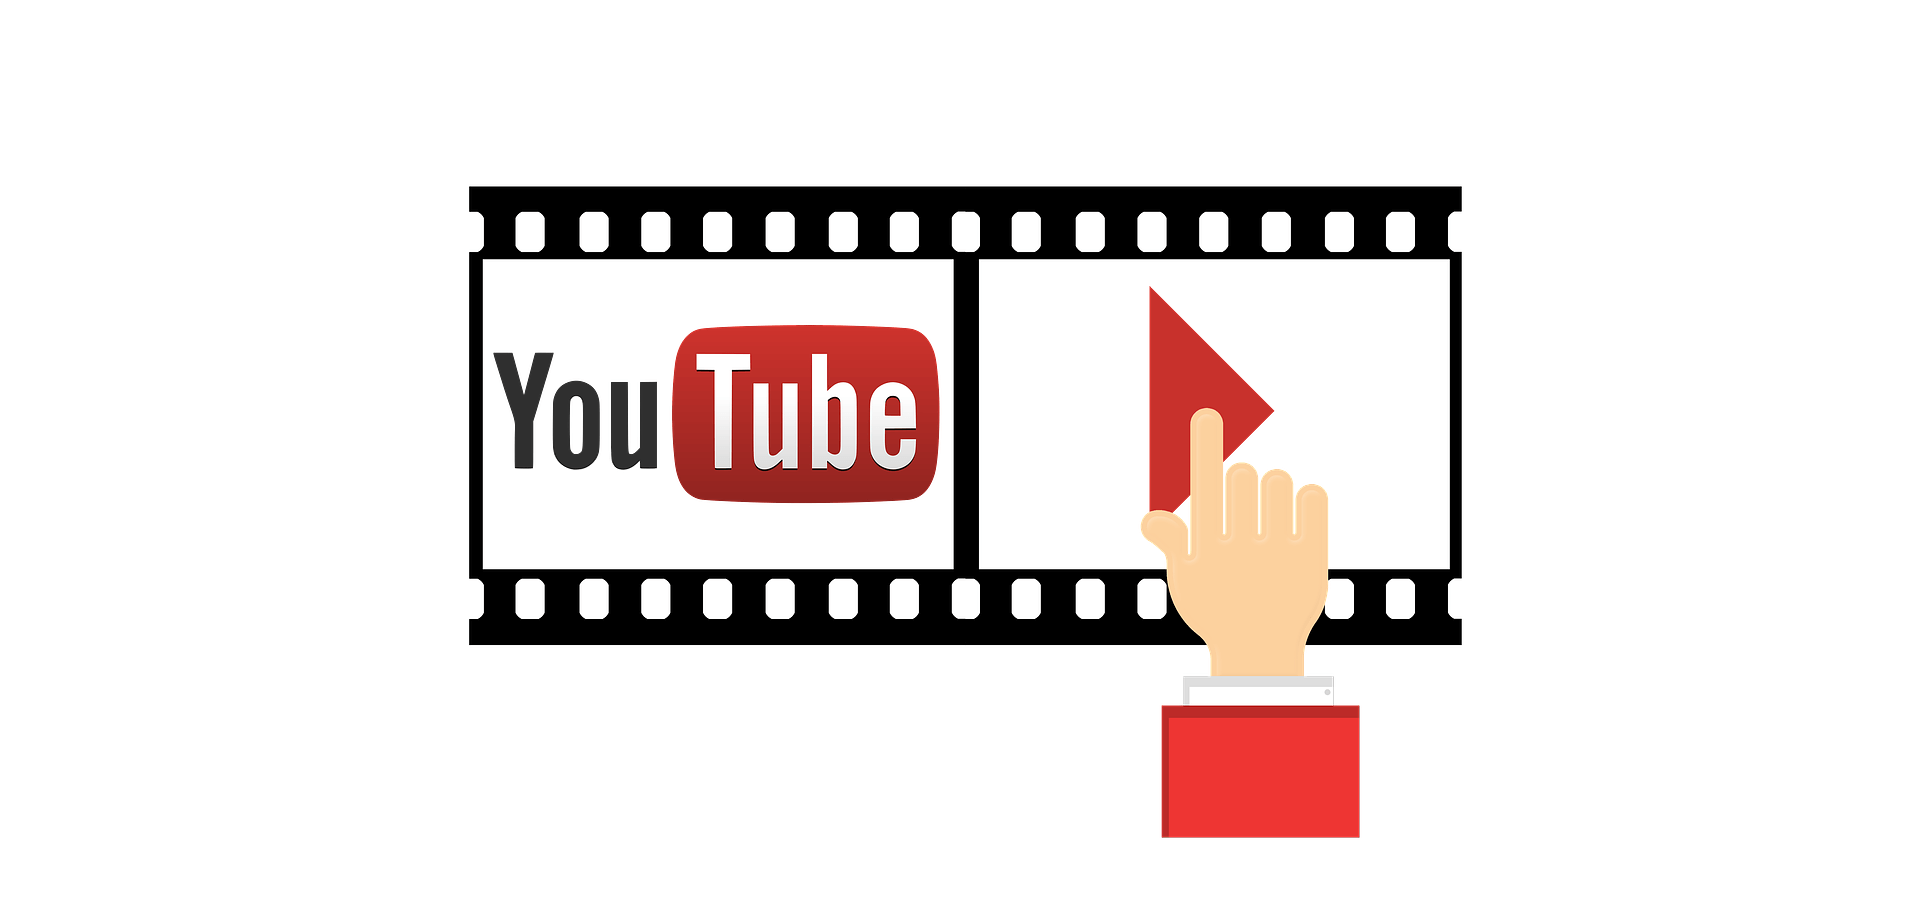 YouTube: Today's internet video giant